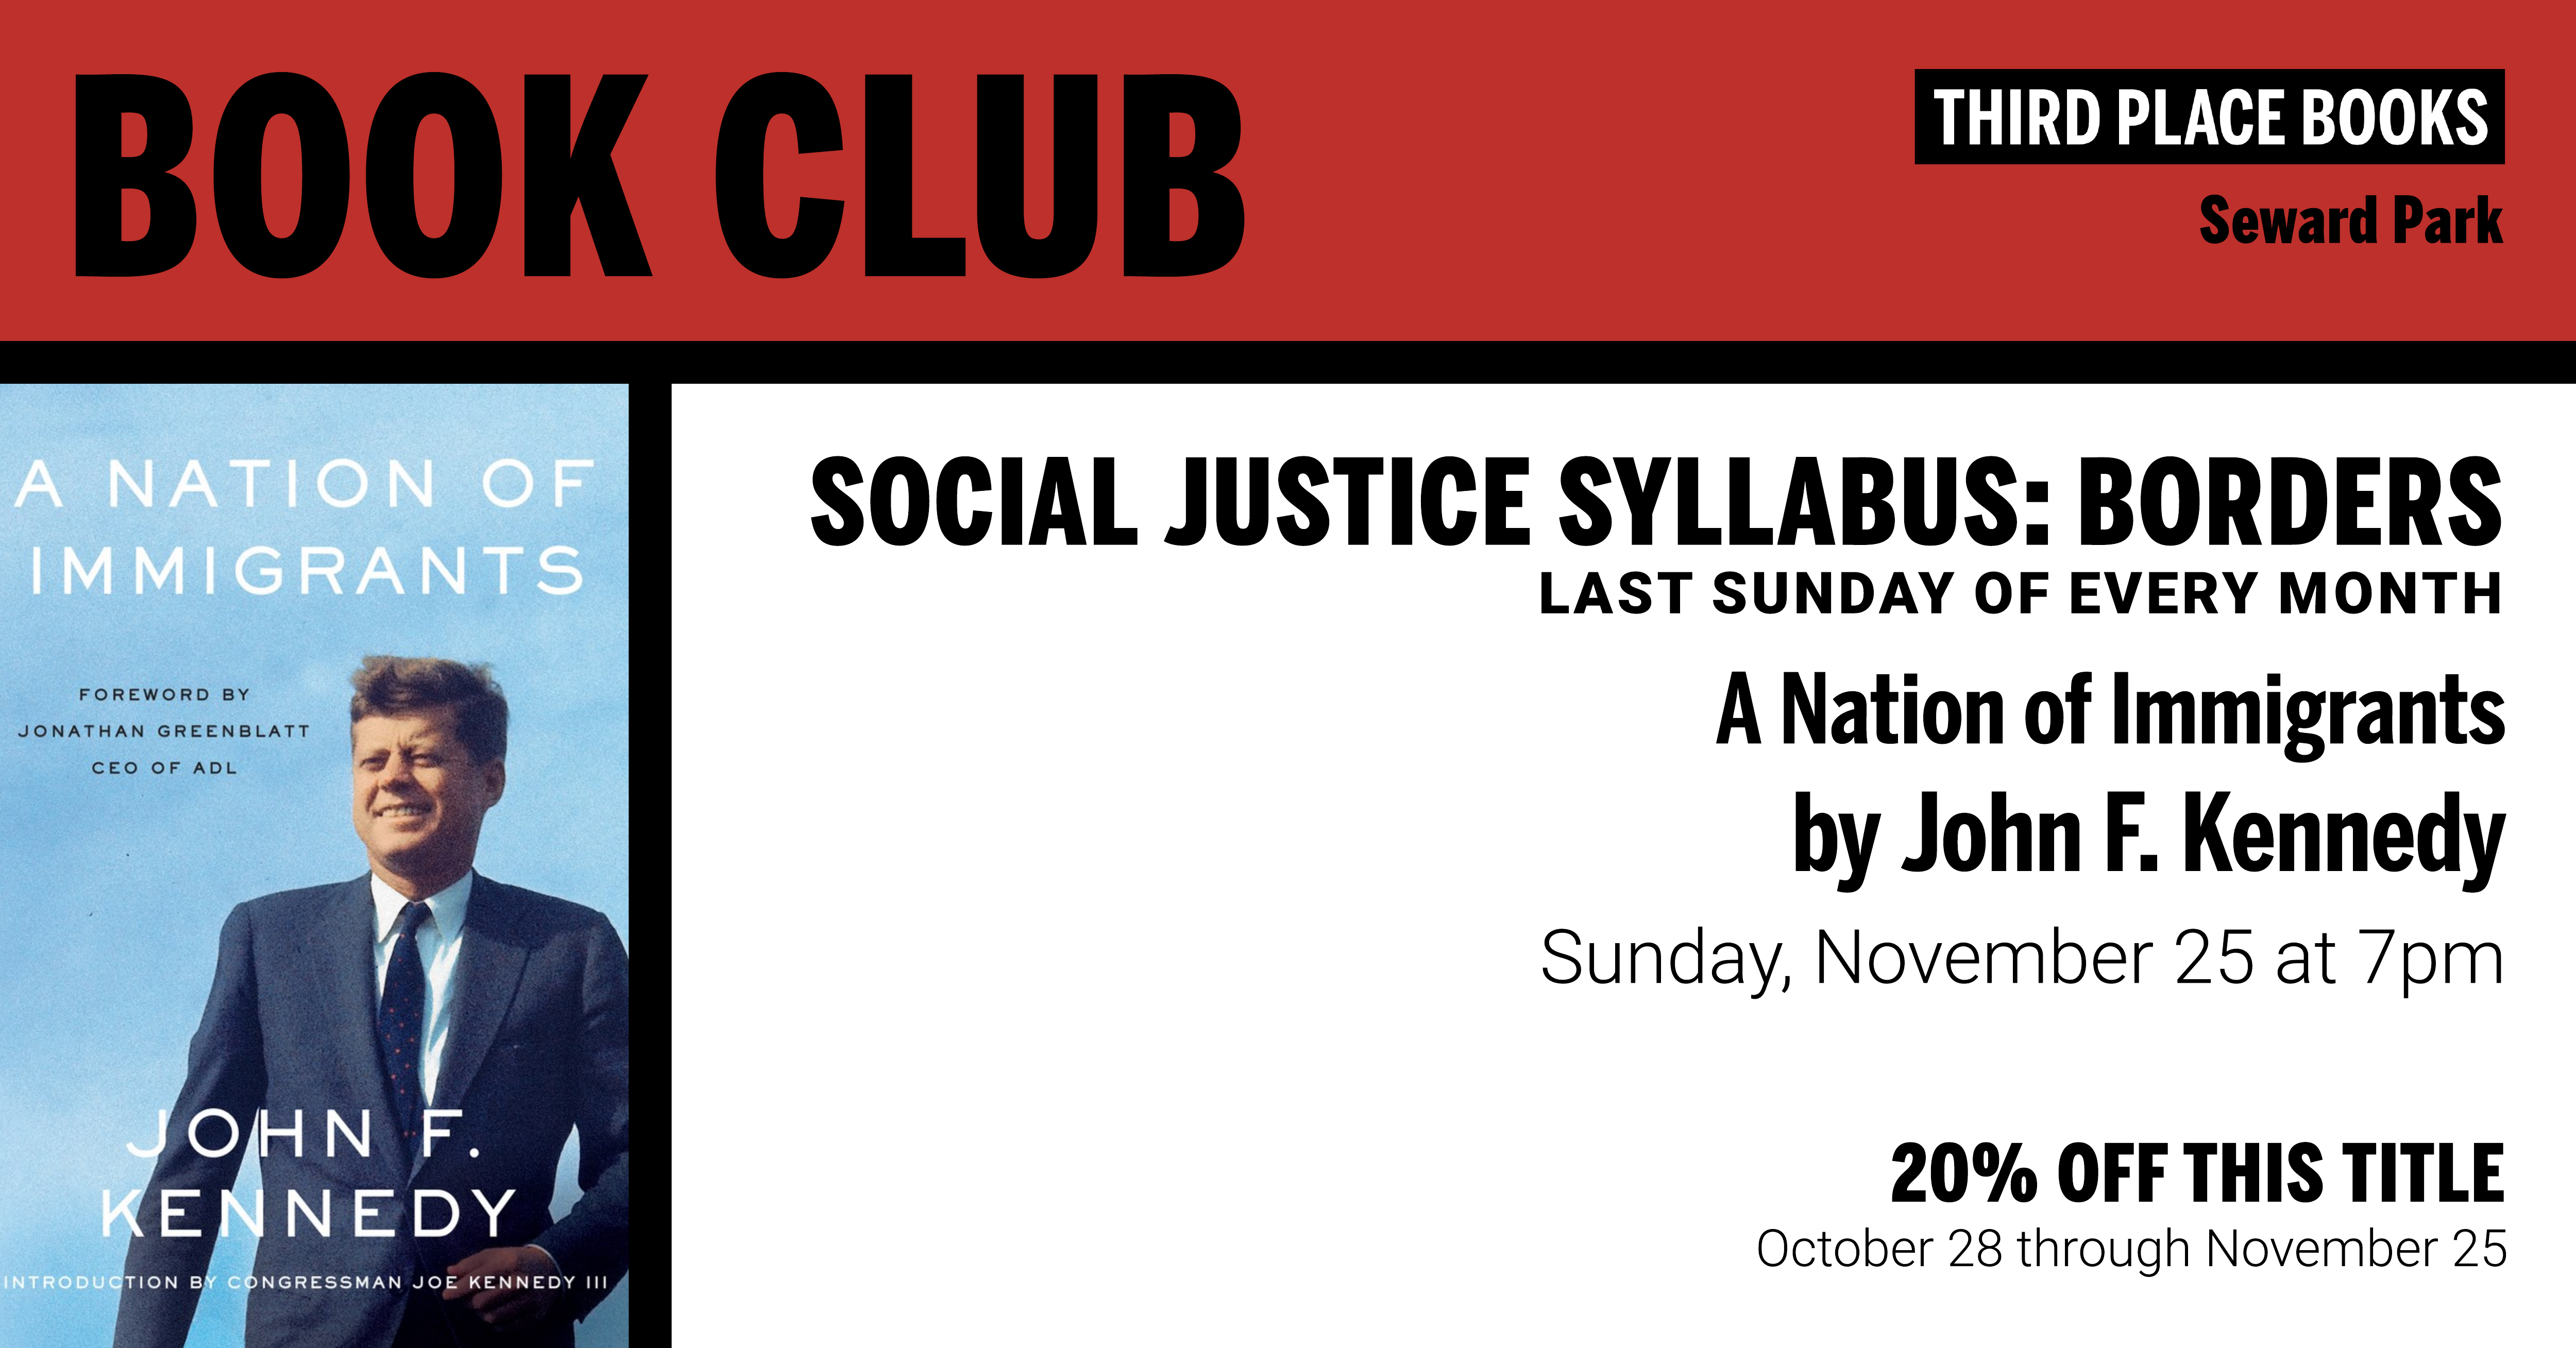 Social Justice Syllabus: Borders discussing A Nation of Immigrants on Sunday, November 25 at 7pm